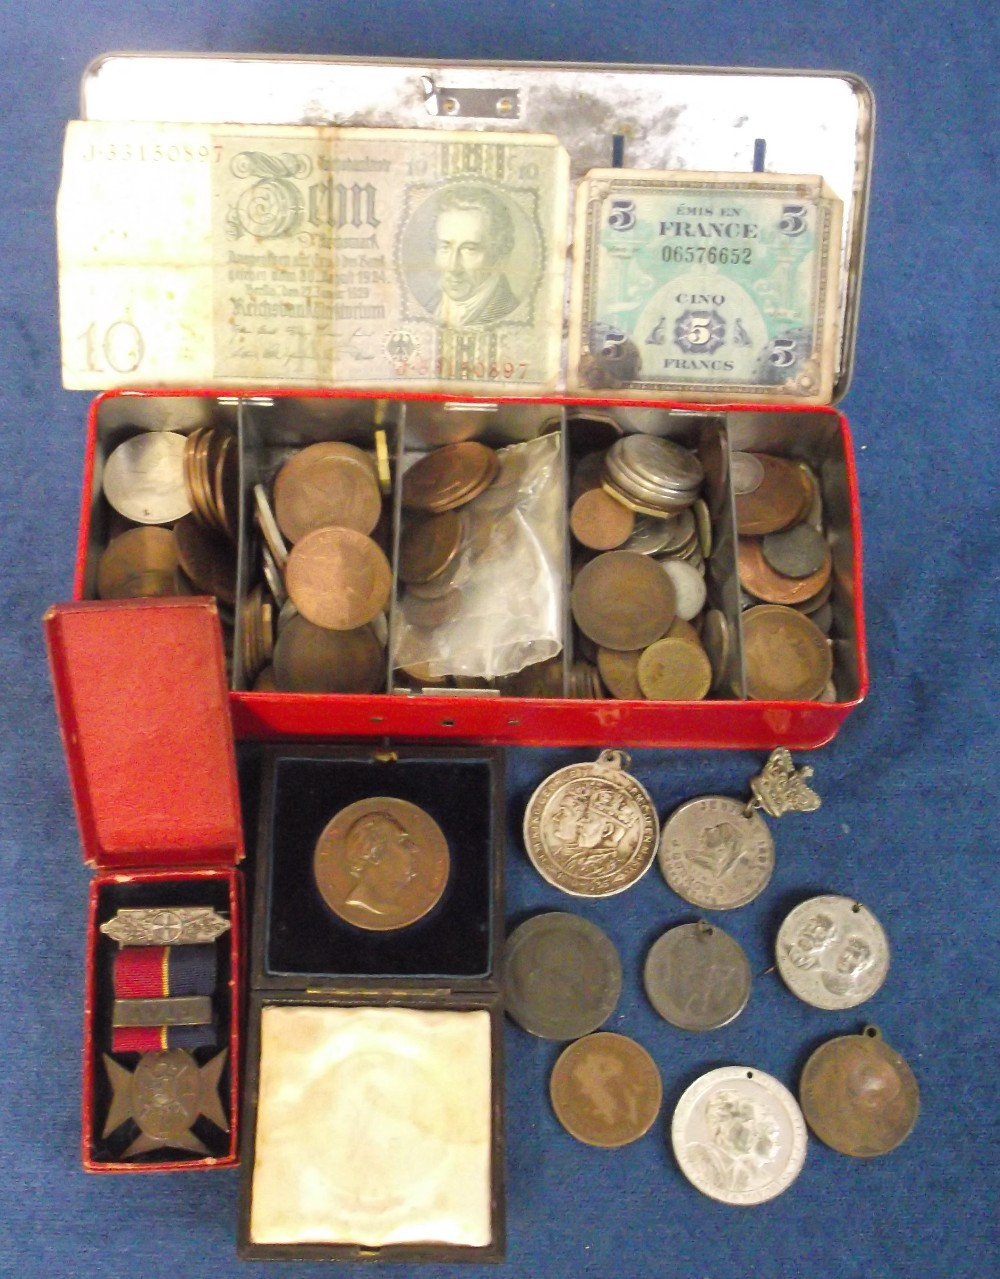 Lot 12 - Coins / Medals etc, selection of GB copper coins plus a few foreign, also a Royal Horticultural